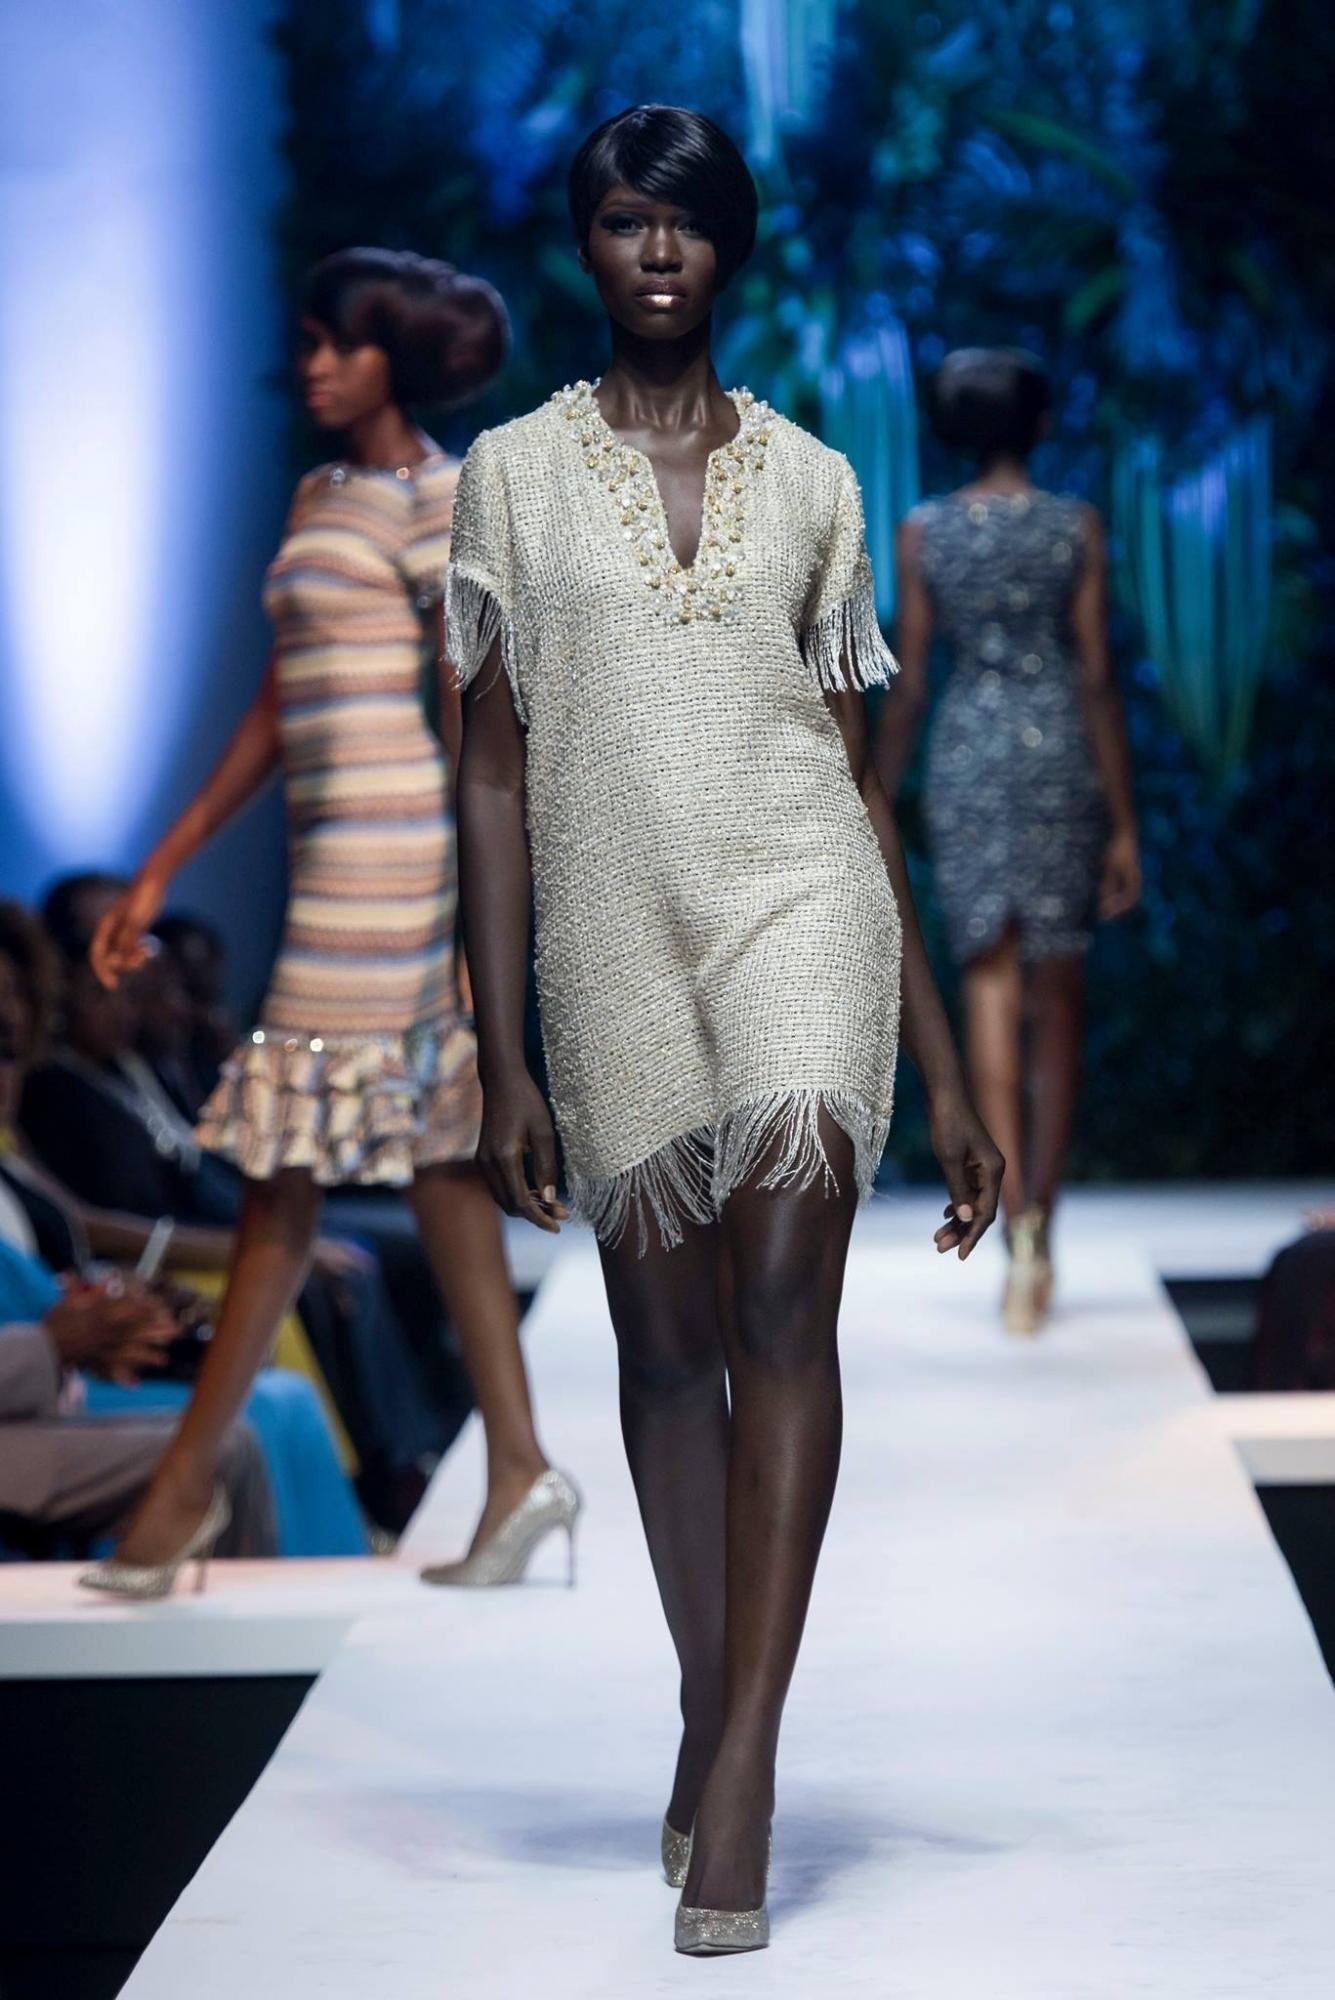 Cameroonian top model Marie Graobe